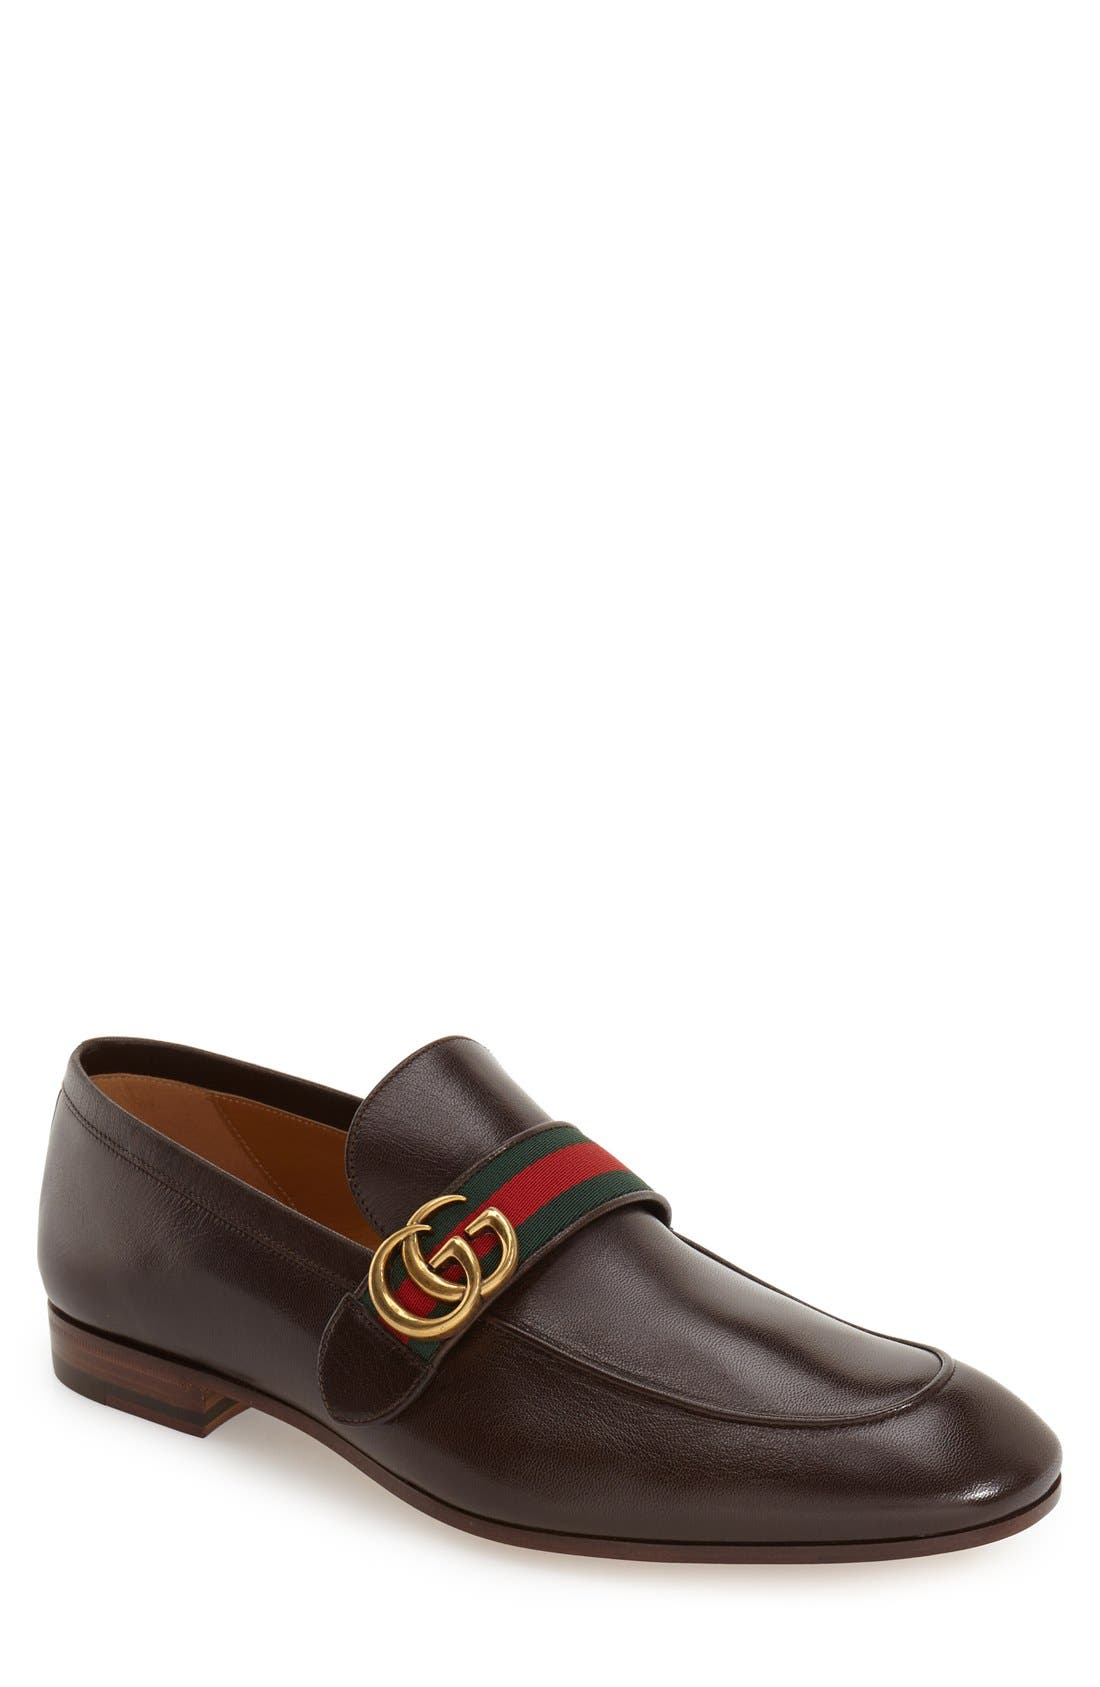 Donnie Bit Loafer,                             Main thumbnail 1, color,                             Cocoa Leather